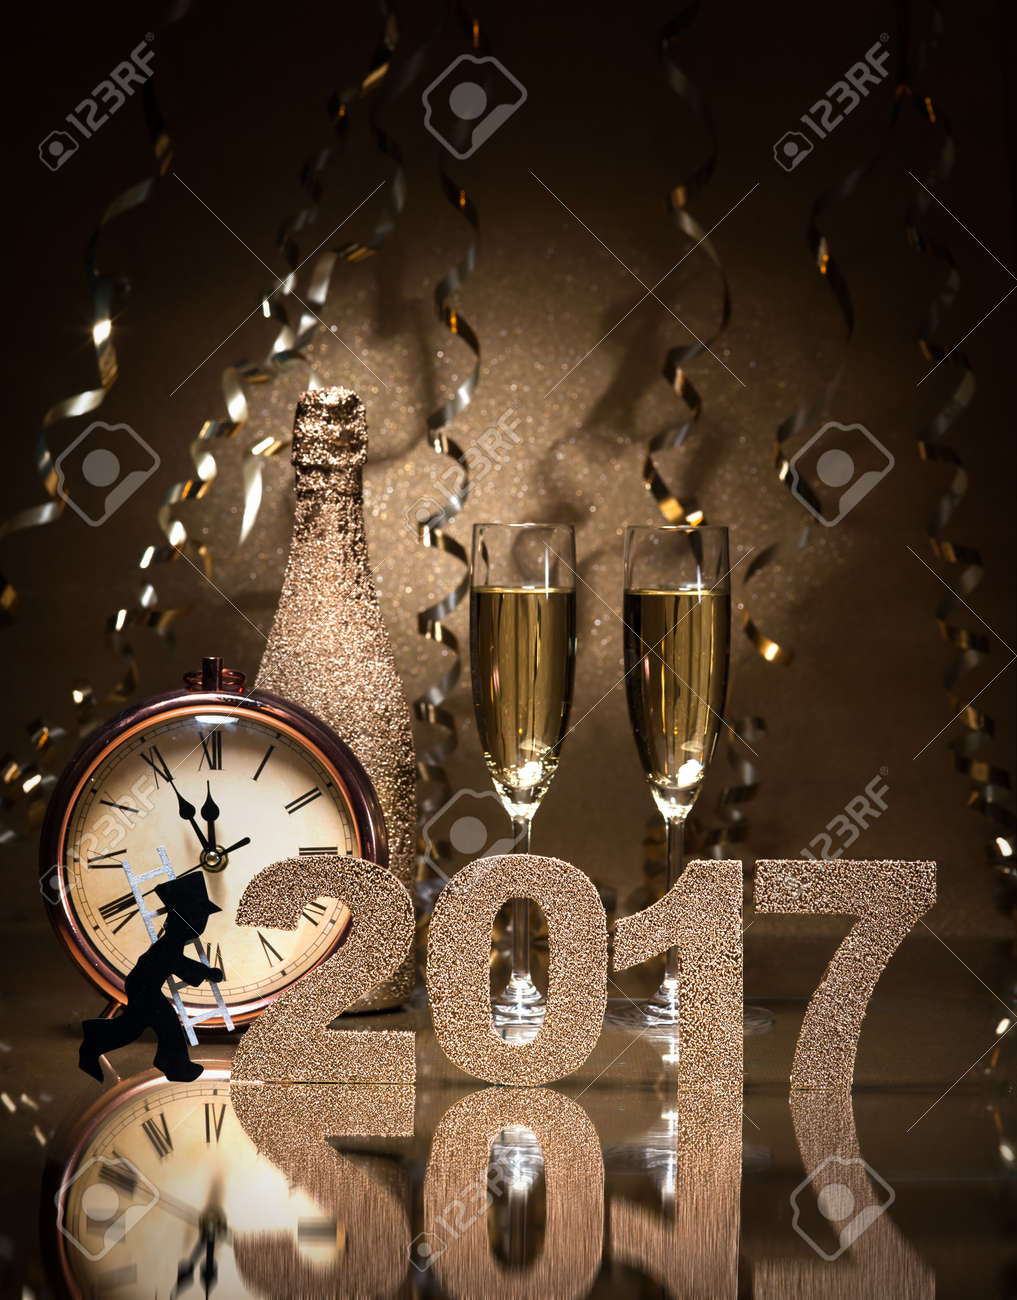 New Years Eve celebration background with pair of flutes, bottle of champagne, clock and a chimney sweep as lucky charm Stock Photo - 57246676